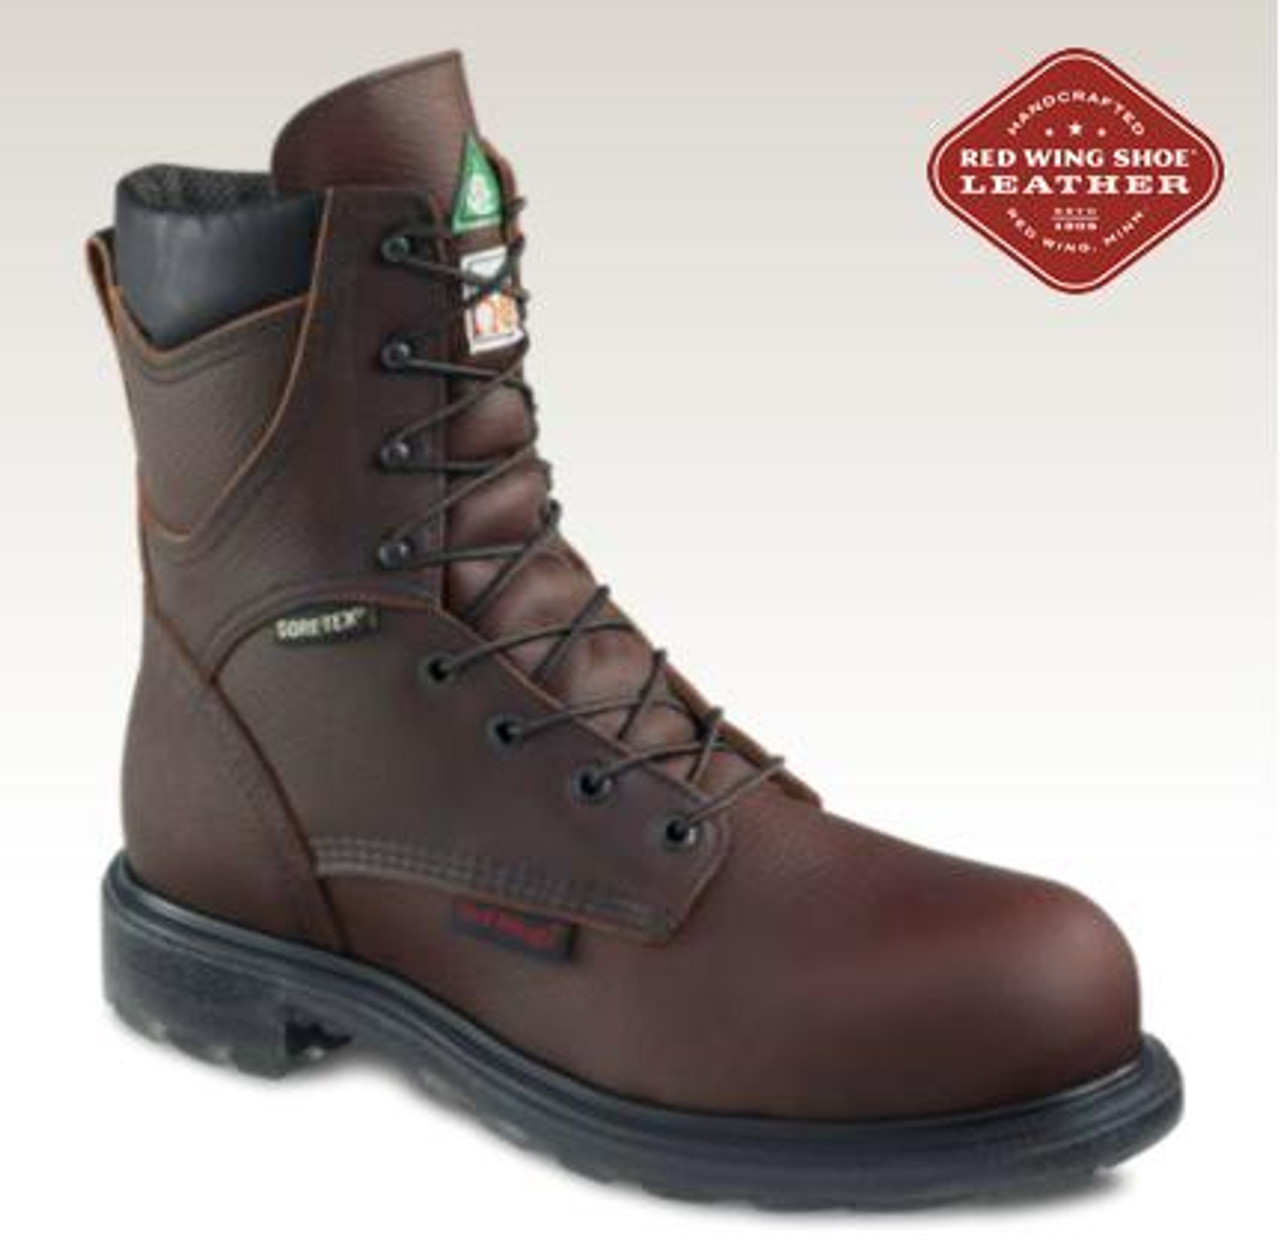 Red Wing 2414 GoreTex CSA Safety Boot